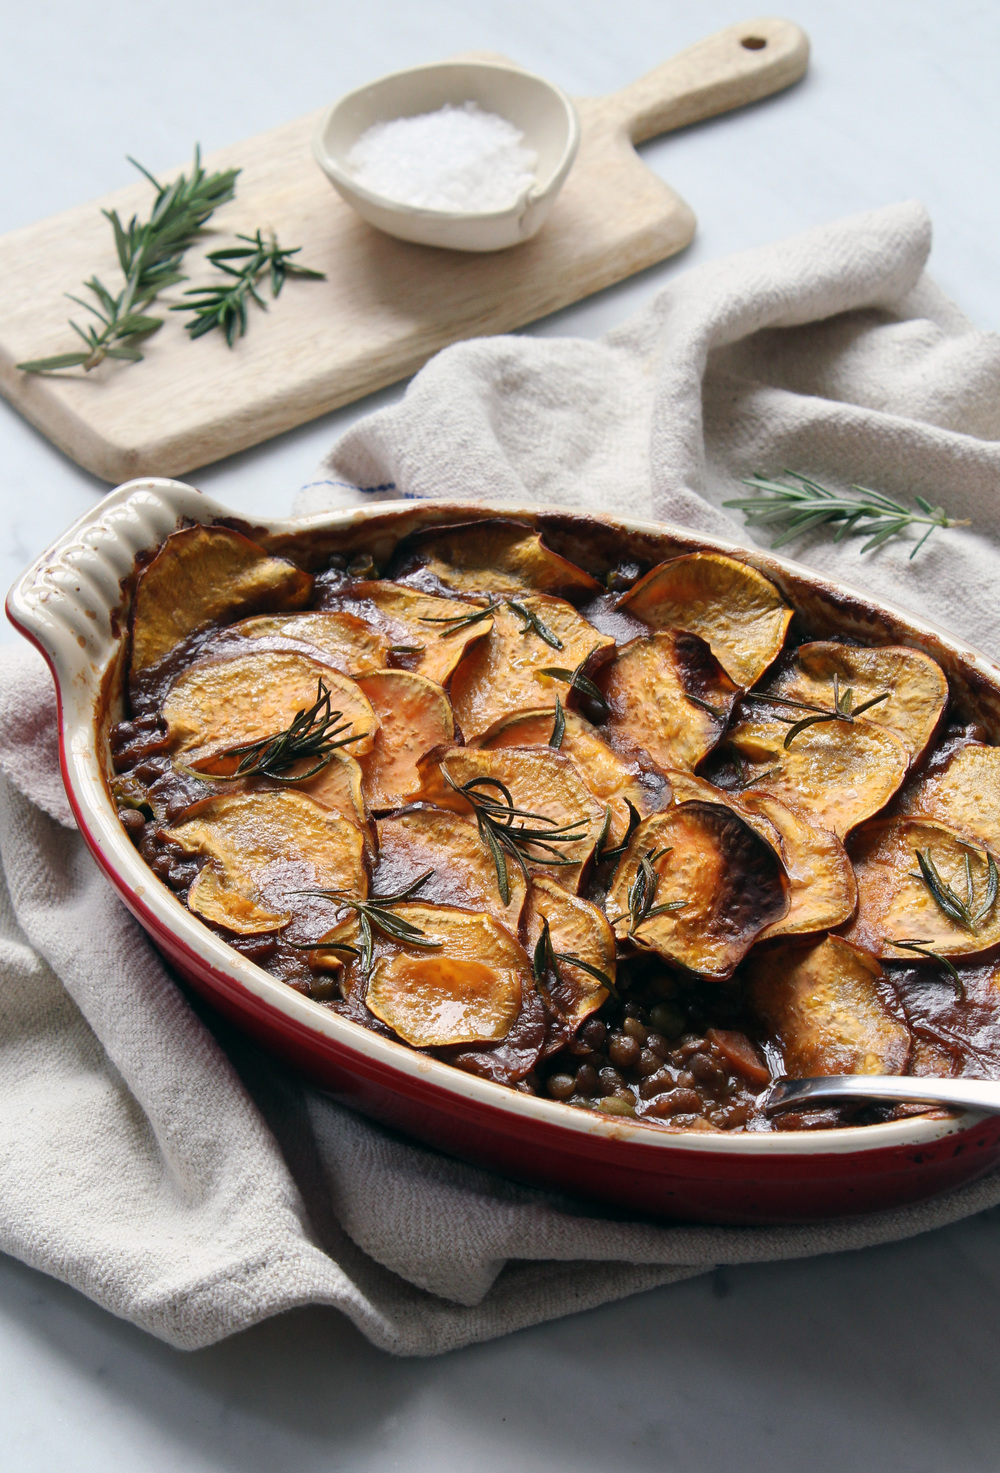 Rich lentil & mushroom pie w/ crispy sweet potato — bonnie delicious